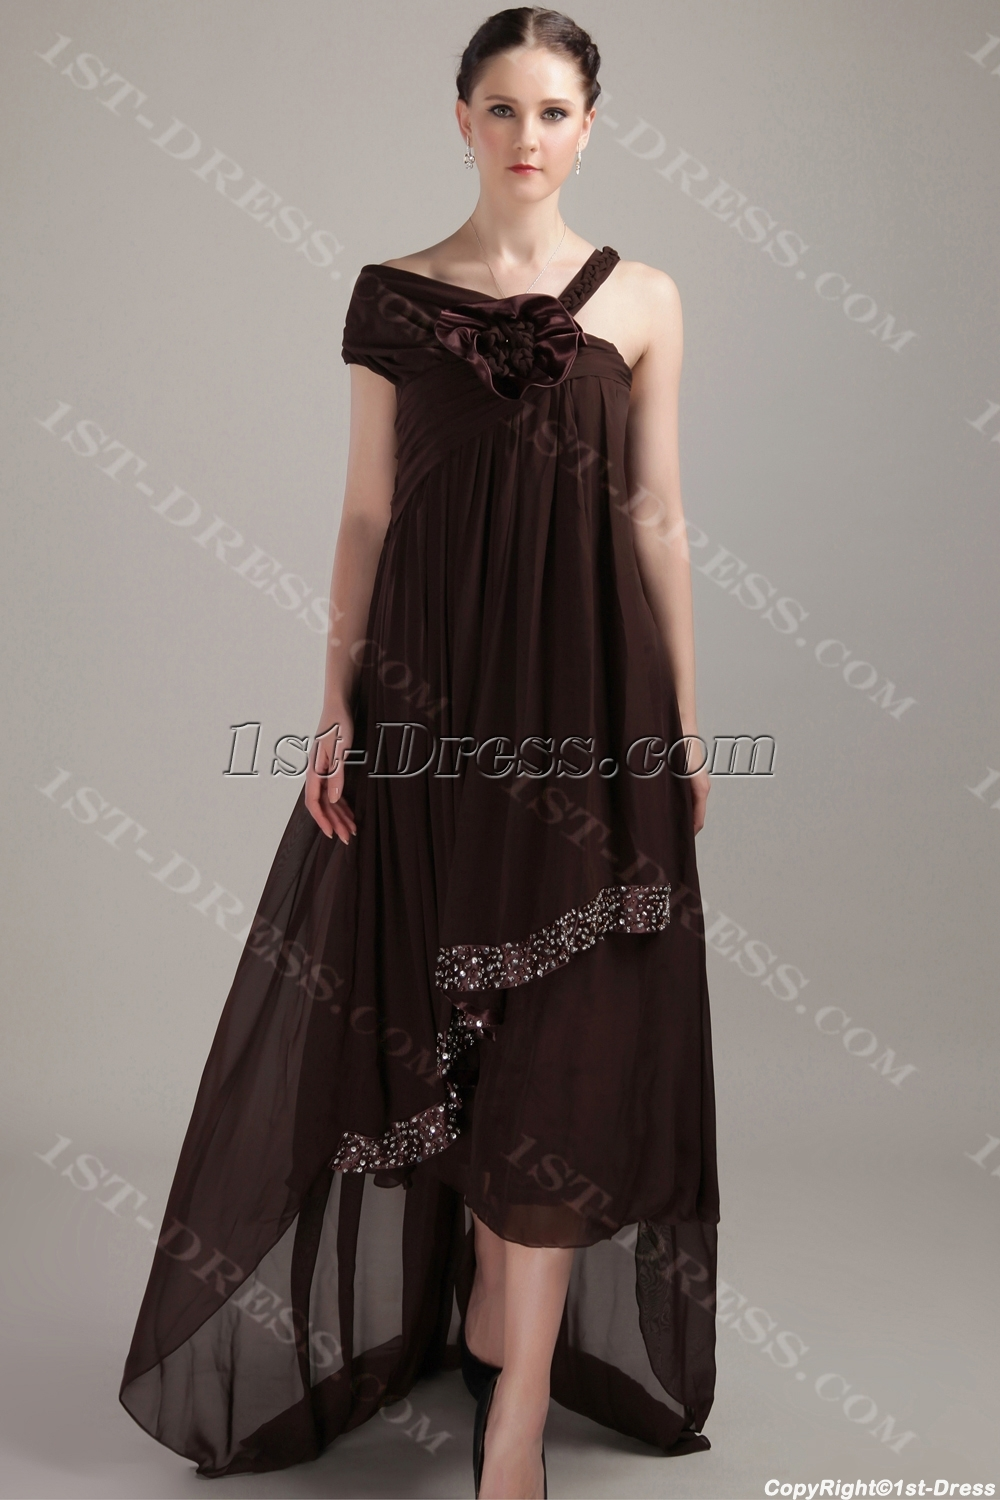 images/201304/big/Brown-Asymmetrical-High-low-Plus-Size-Pregnancy-Prom-Dresses-IMG_3310-1066-b-1-1366197314.jpg